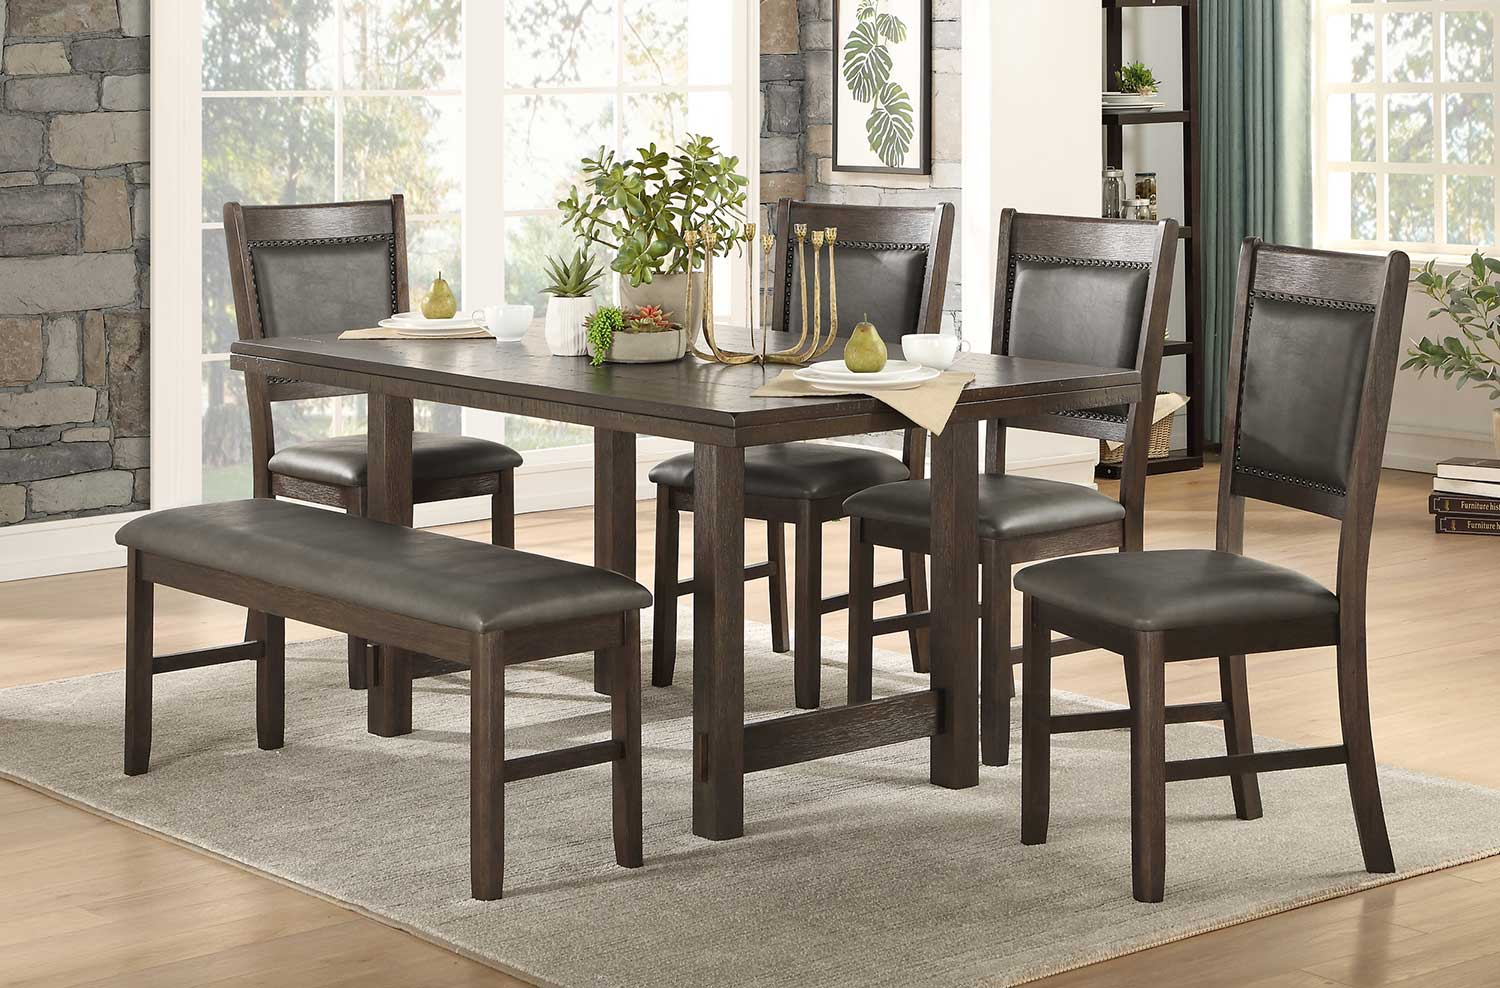 Homelegance Brim Dining Set - Brown Cherry